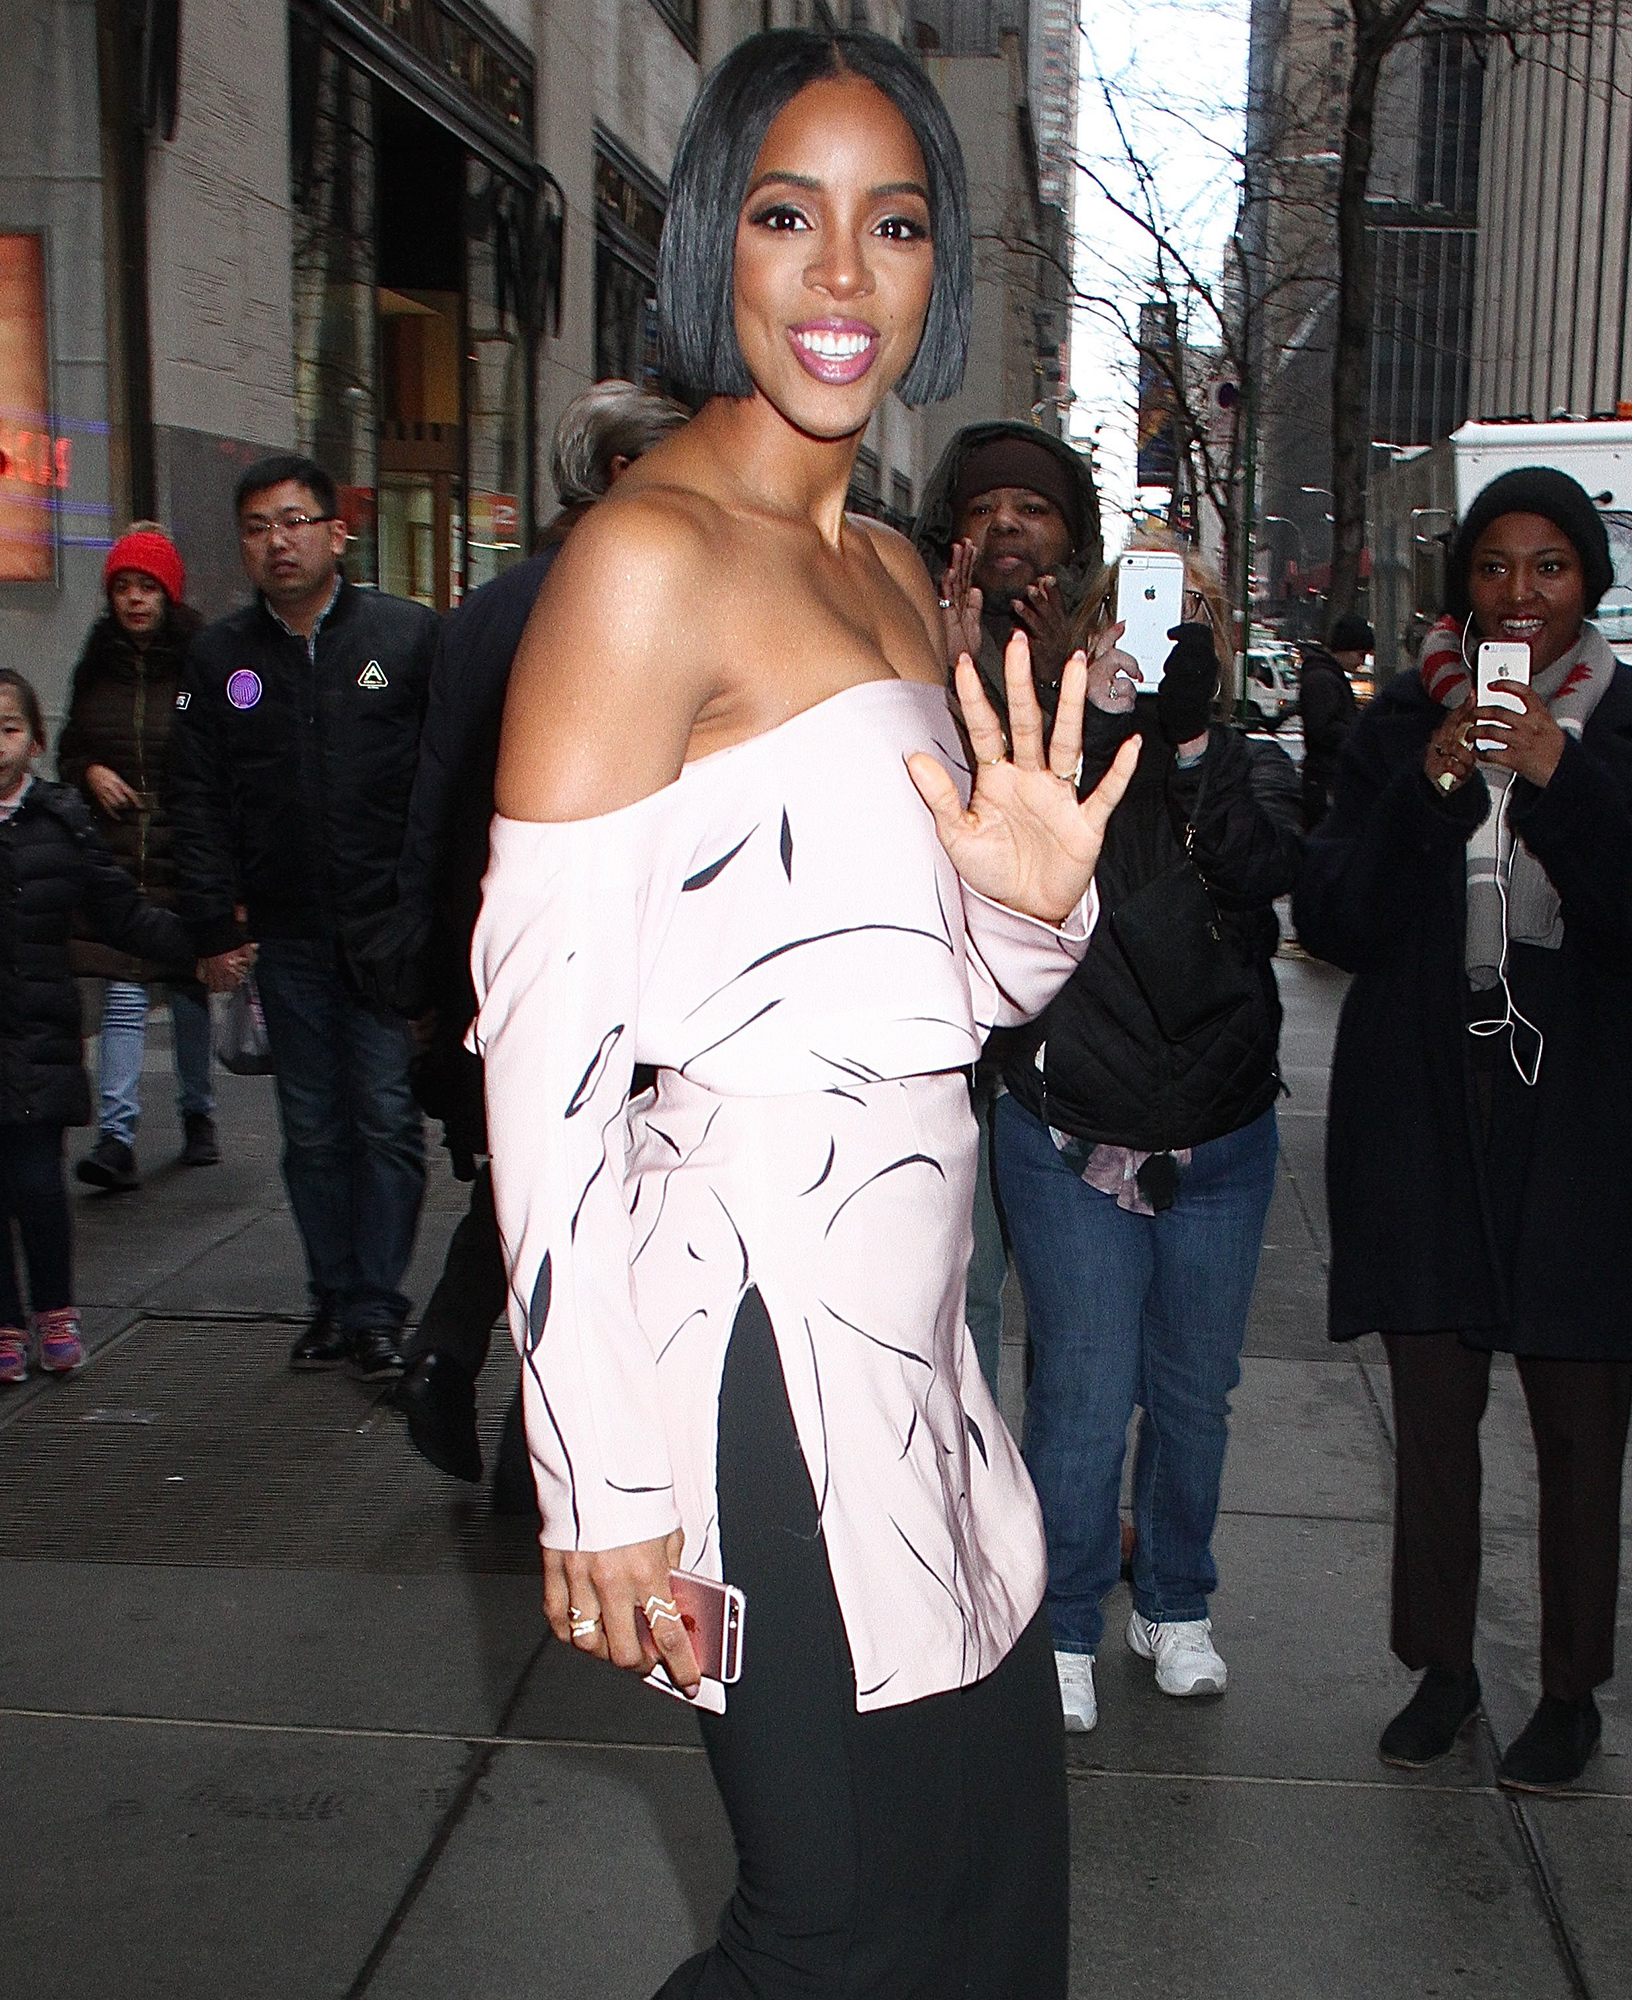 Singer and actress Kelly Rowland spotted leaving 'Access Hollywood Live' in NYC's Rockefeller Center